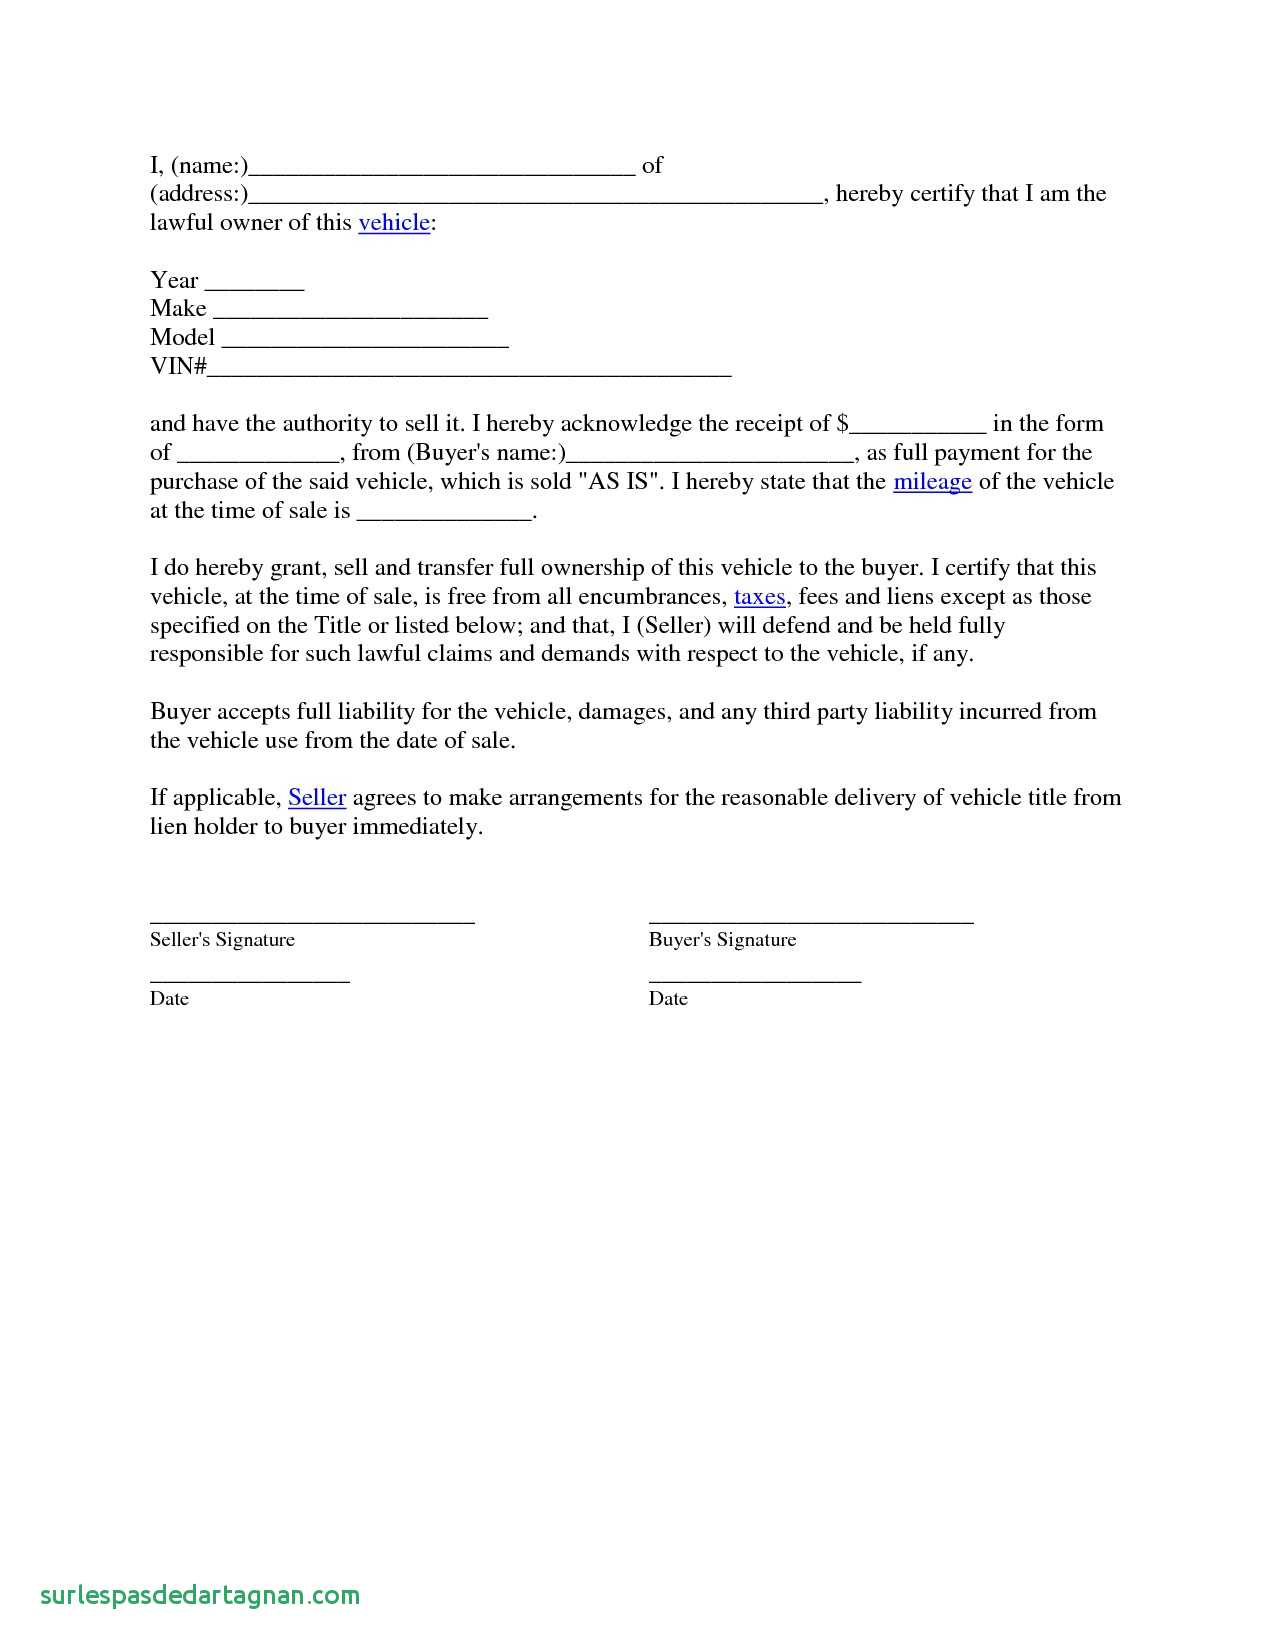 long form sales letter template example-Long form Sales Letter Template Samples 11-e